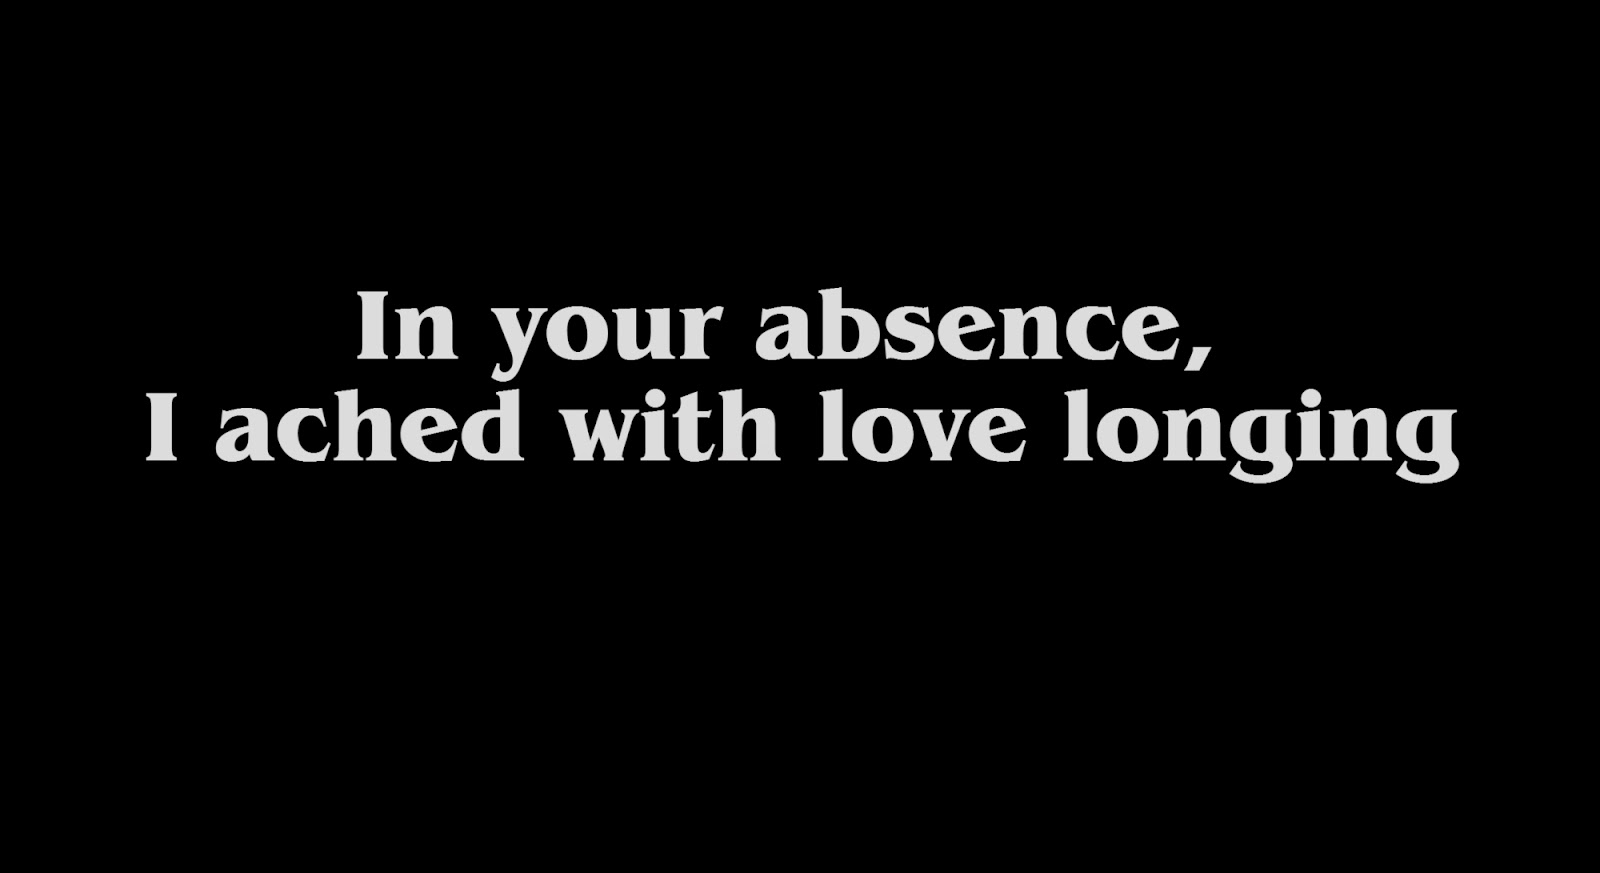 In your absence, I ached with love longing